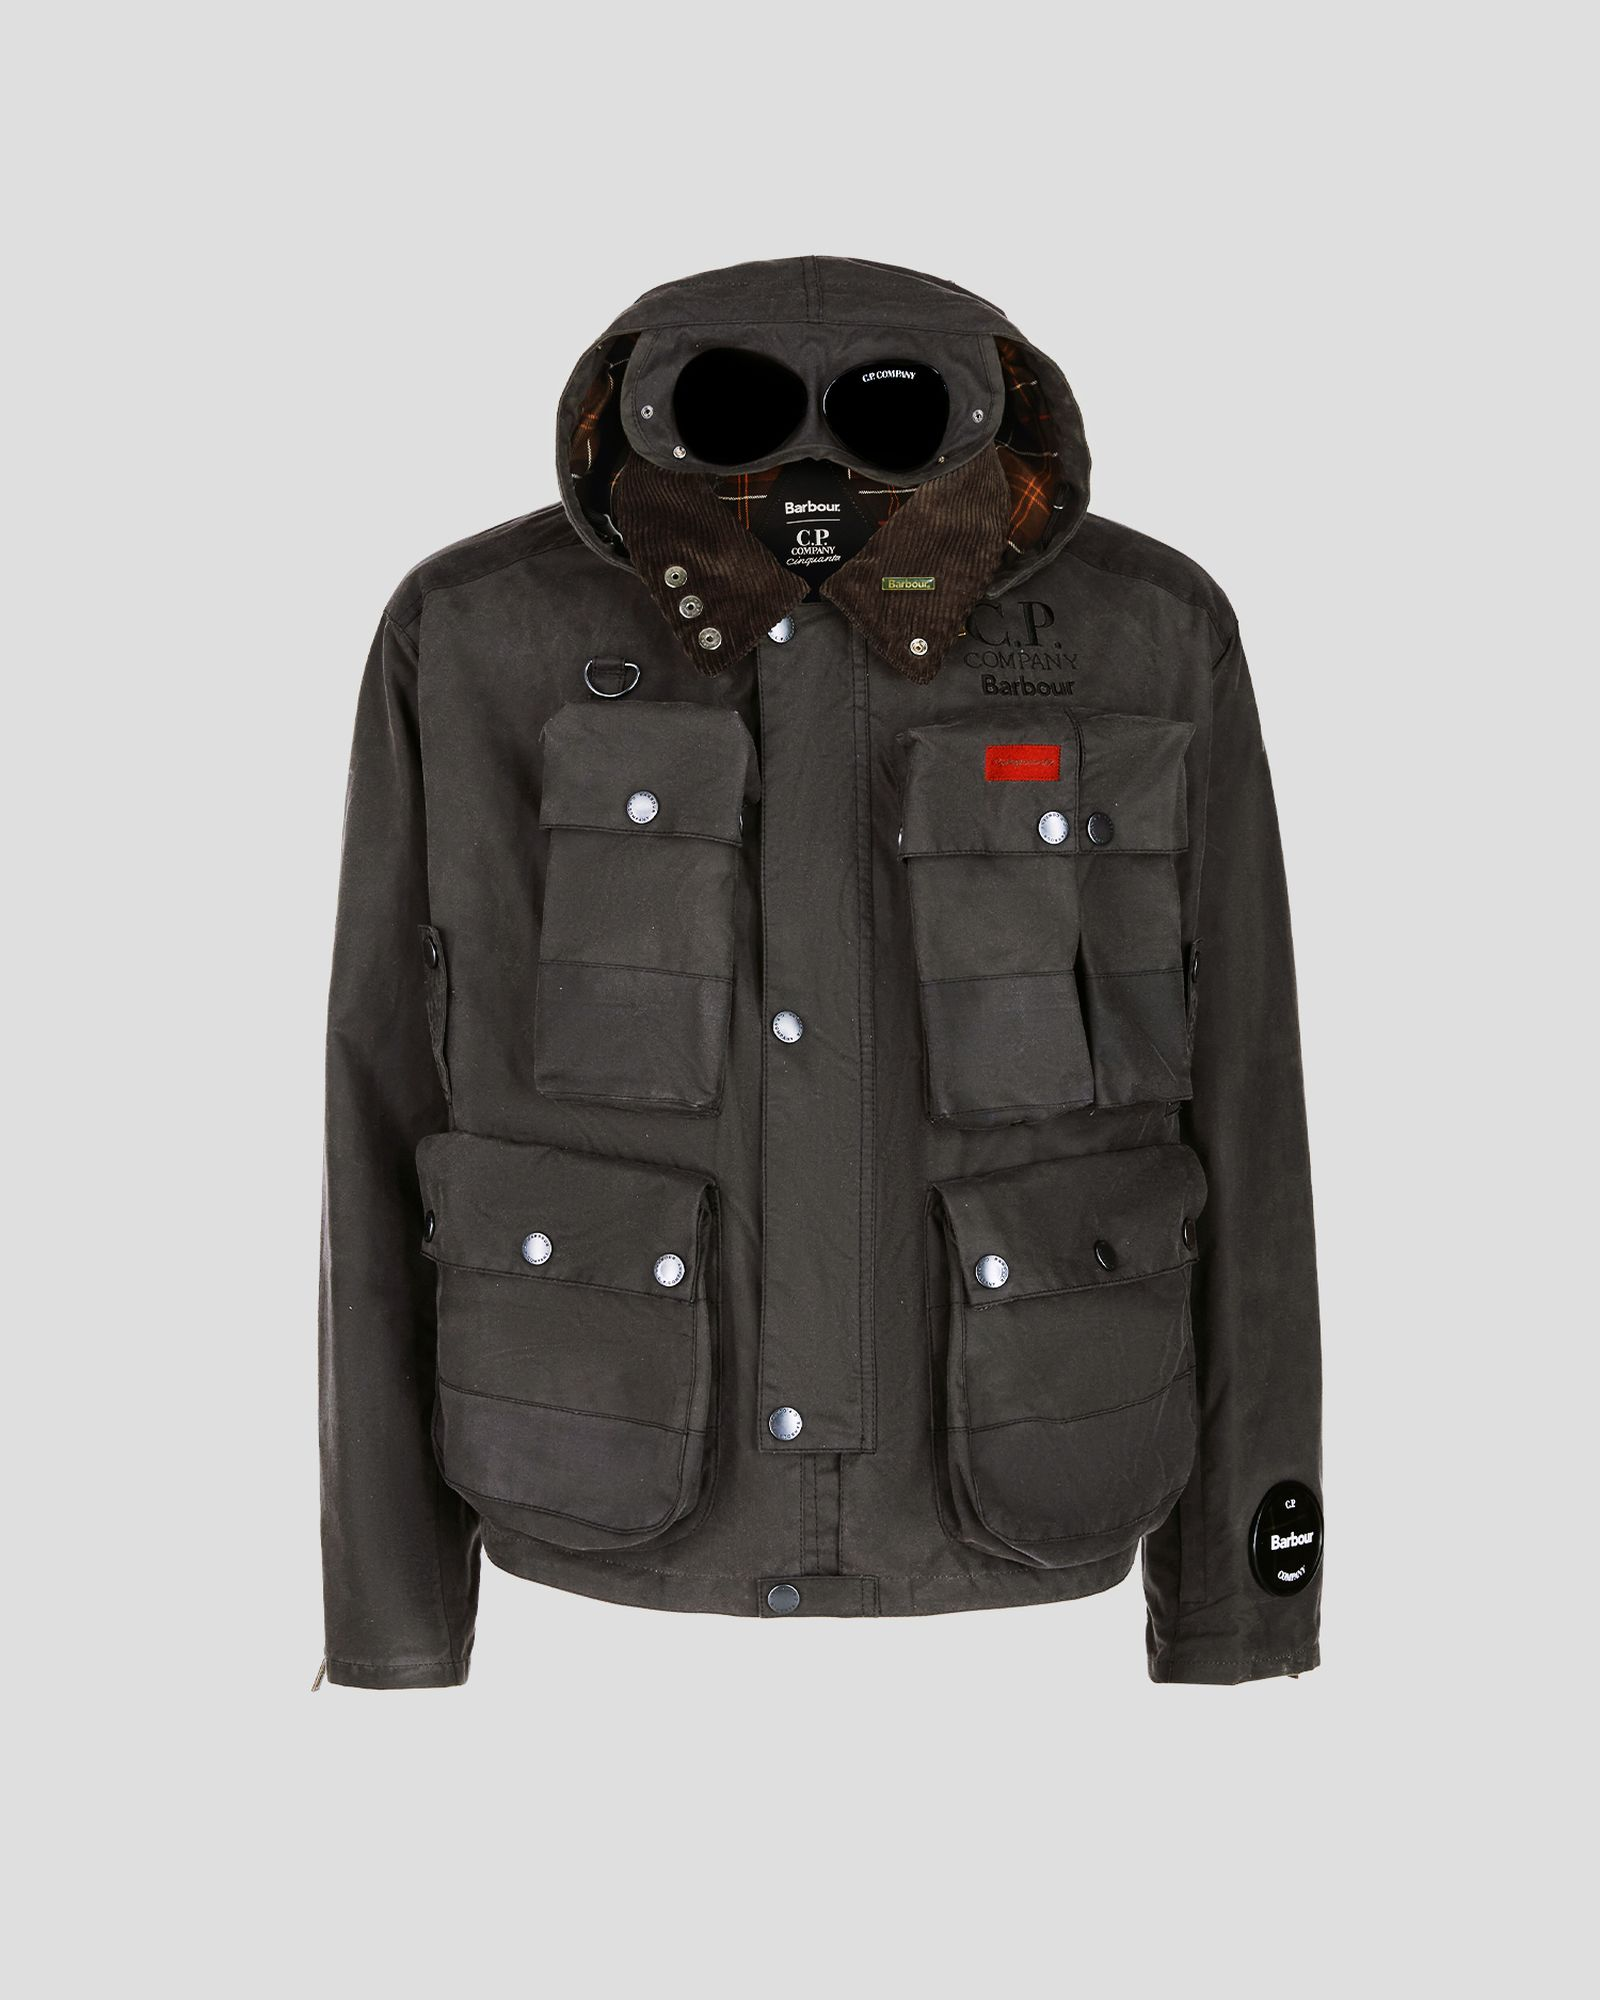 barbour-c-p-company-collection-release-information-1